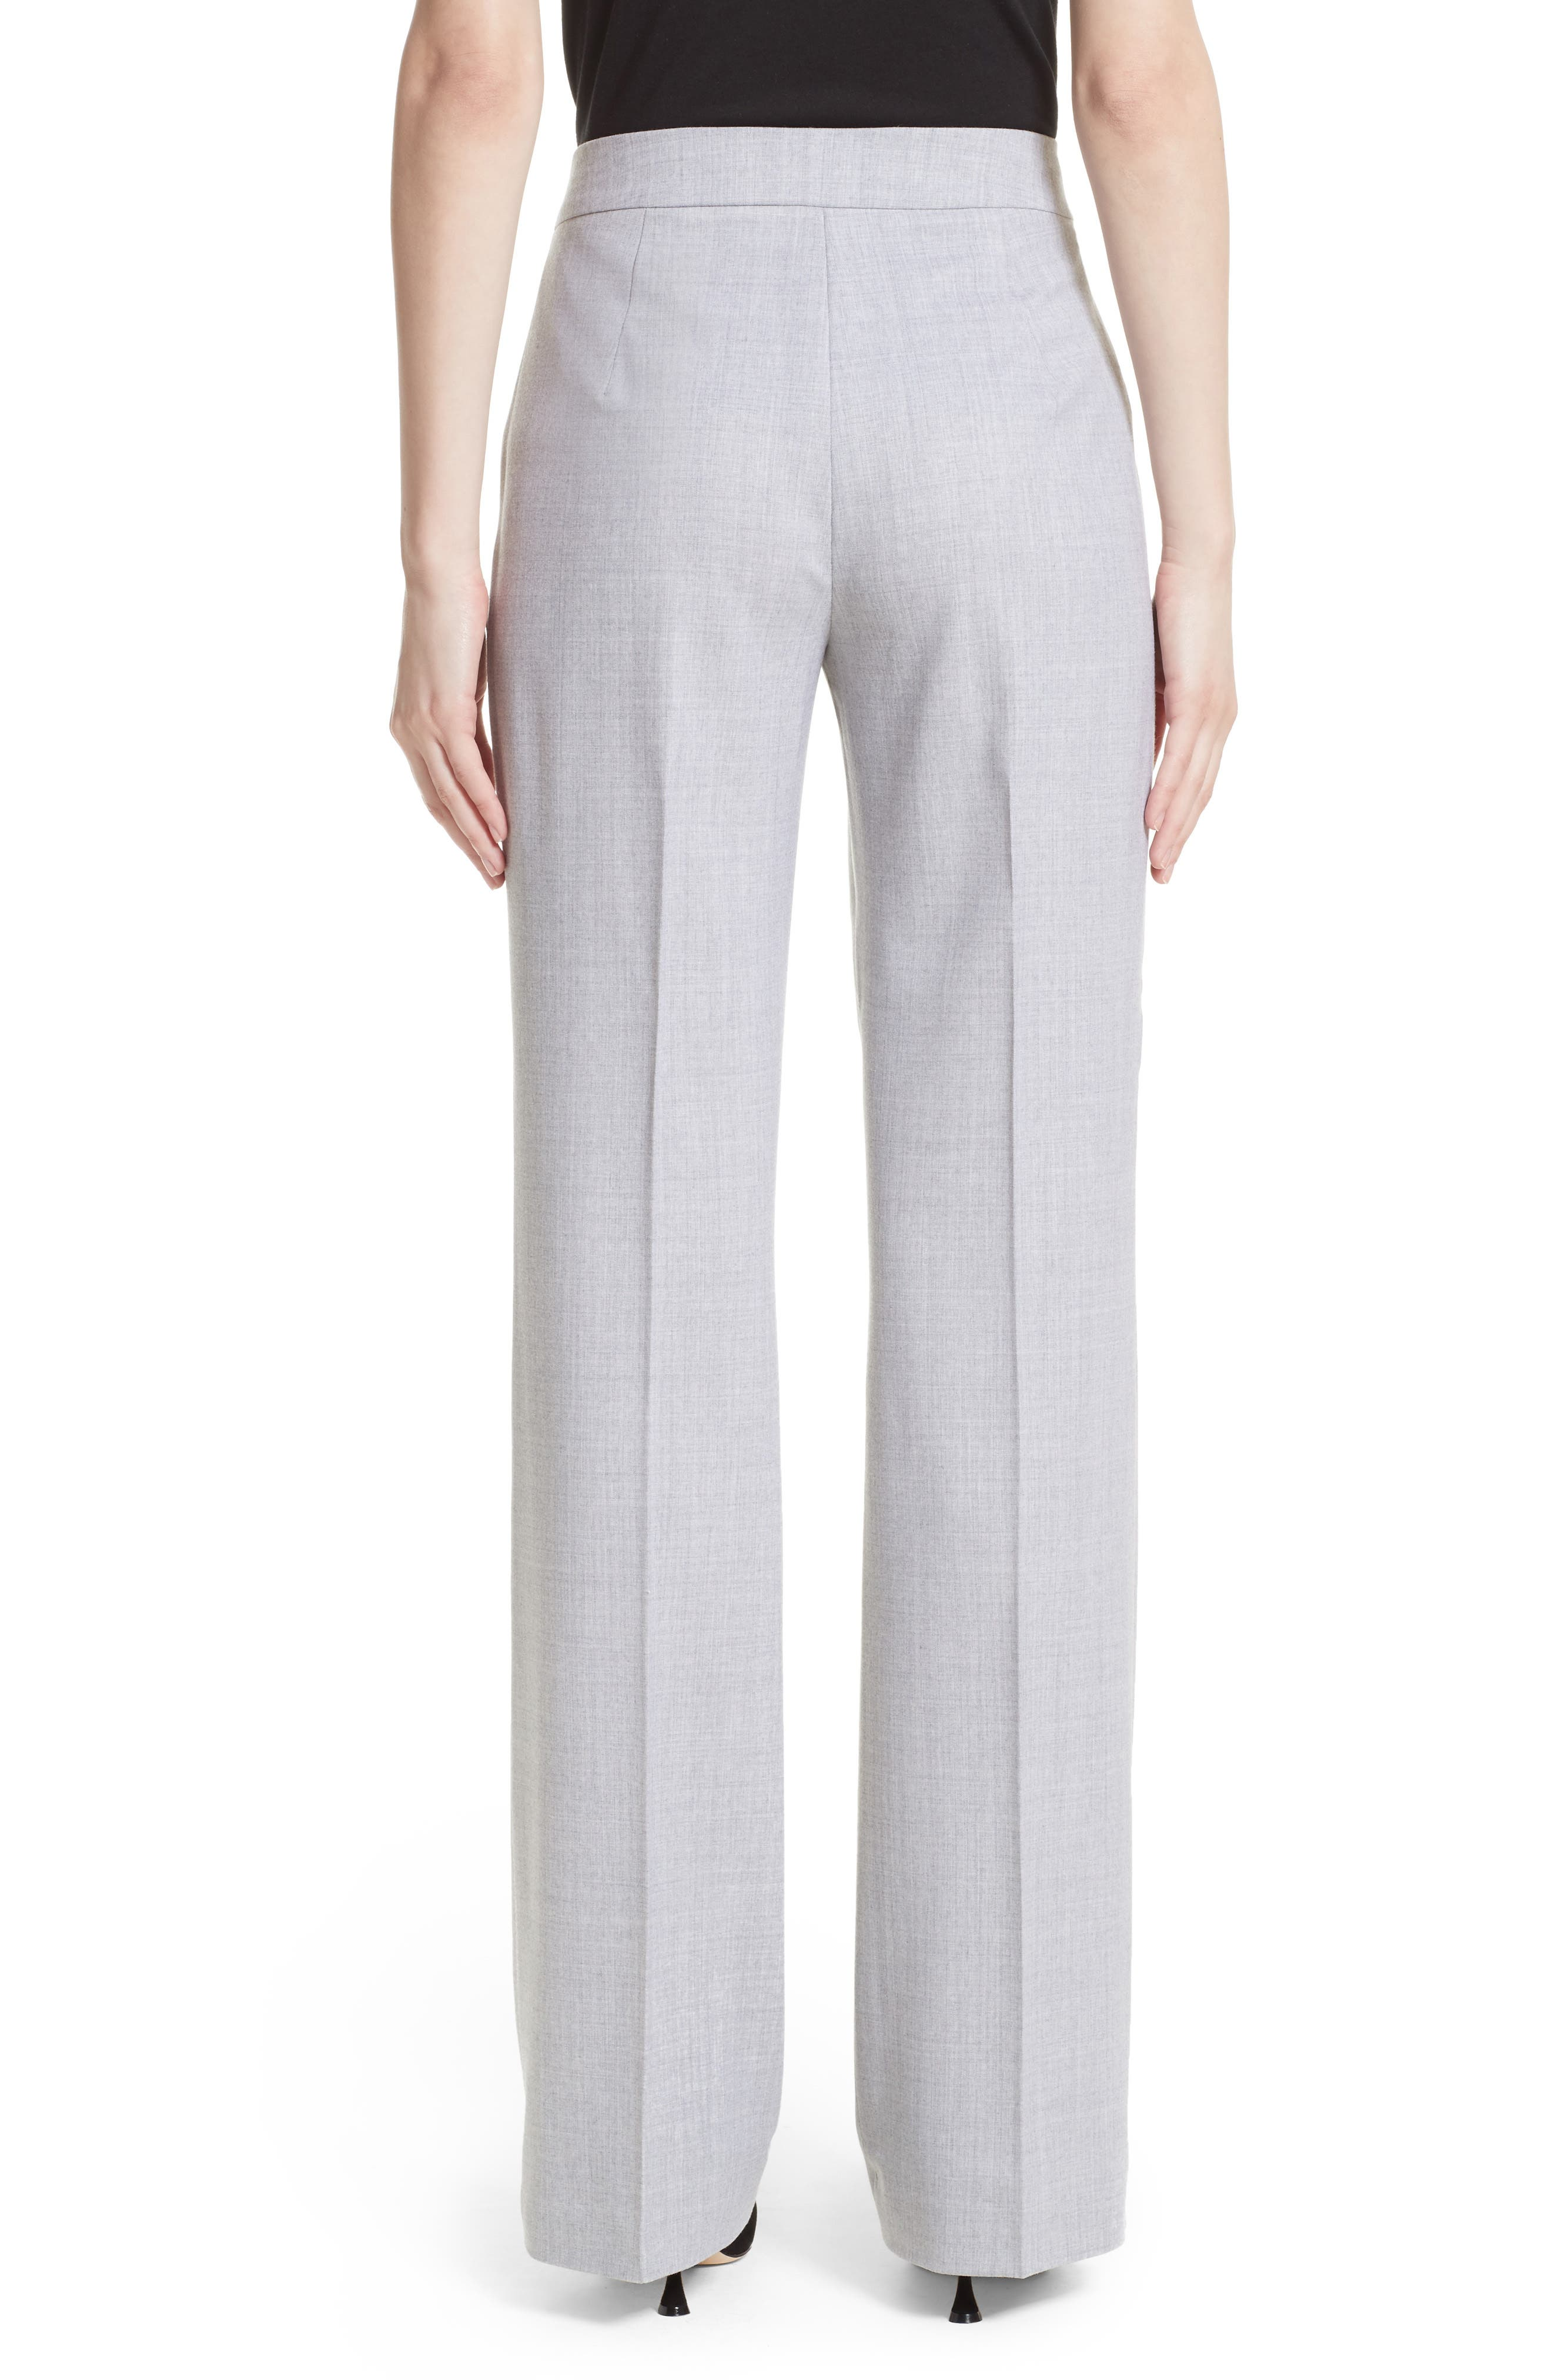 Alessia Stretch Wool Pants,                             Alternate thumbnail 2, color,                             Light Grey